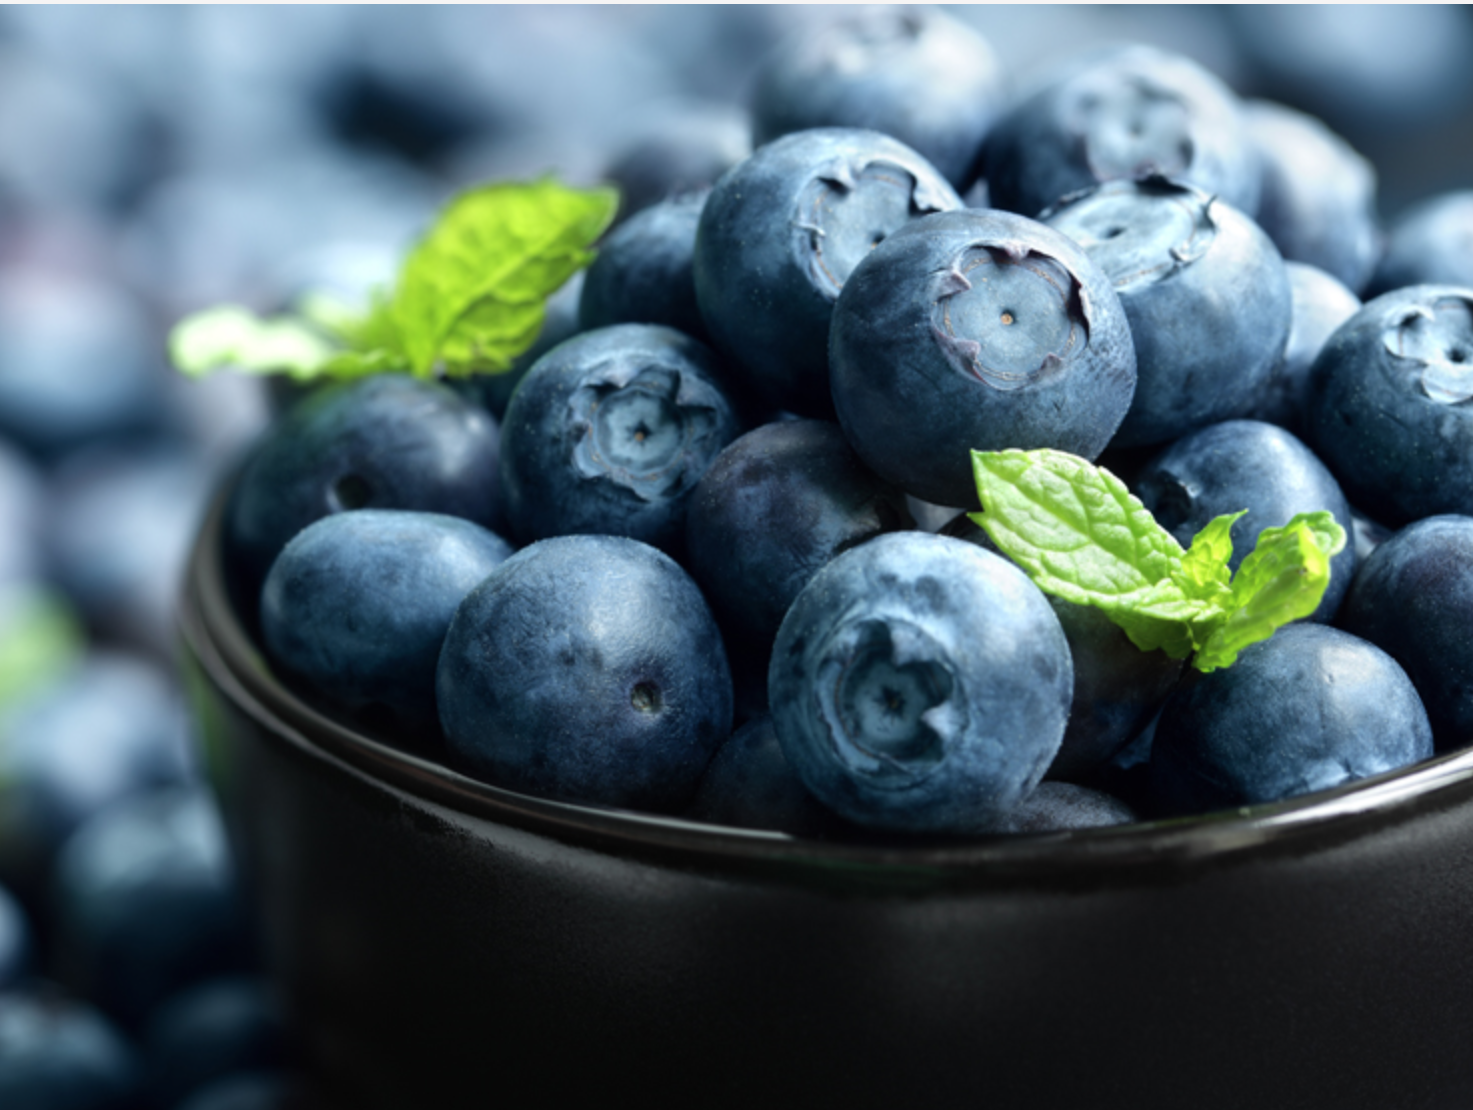 Argentine blueberry season wrapped up with stable numbers and higher sea shipments